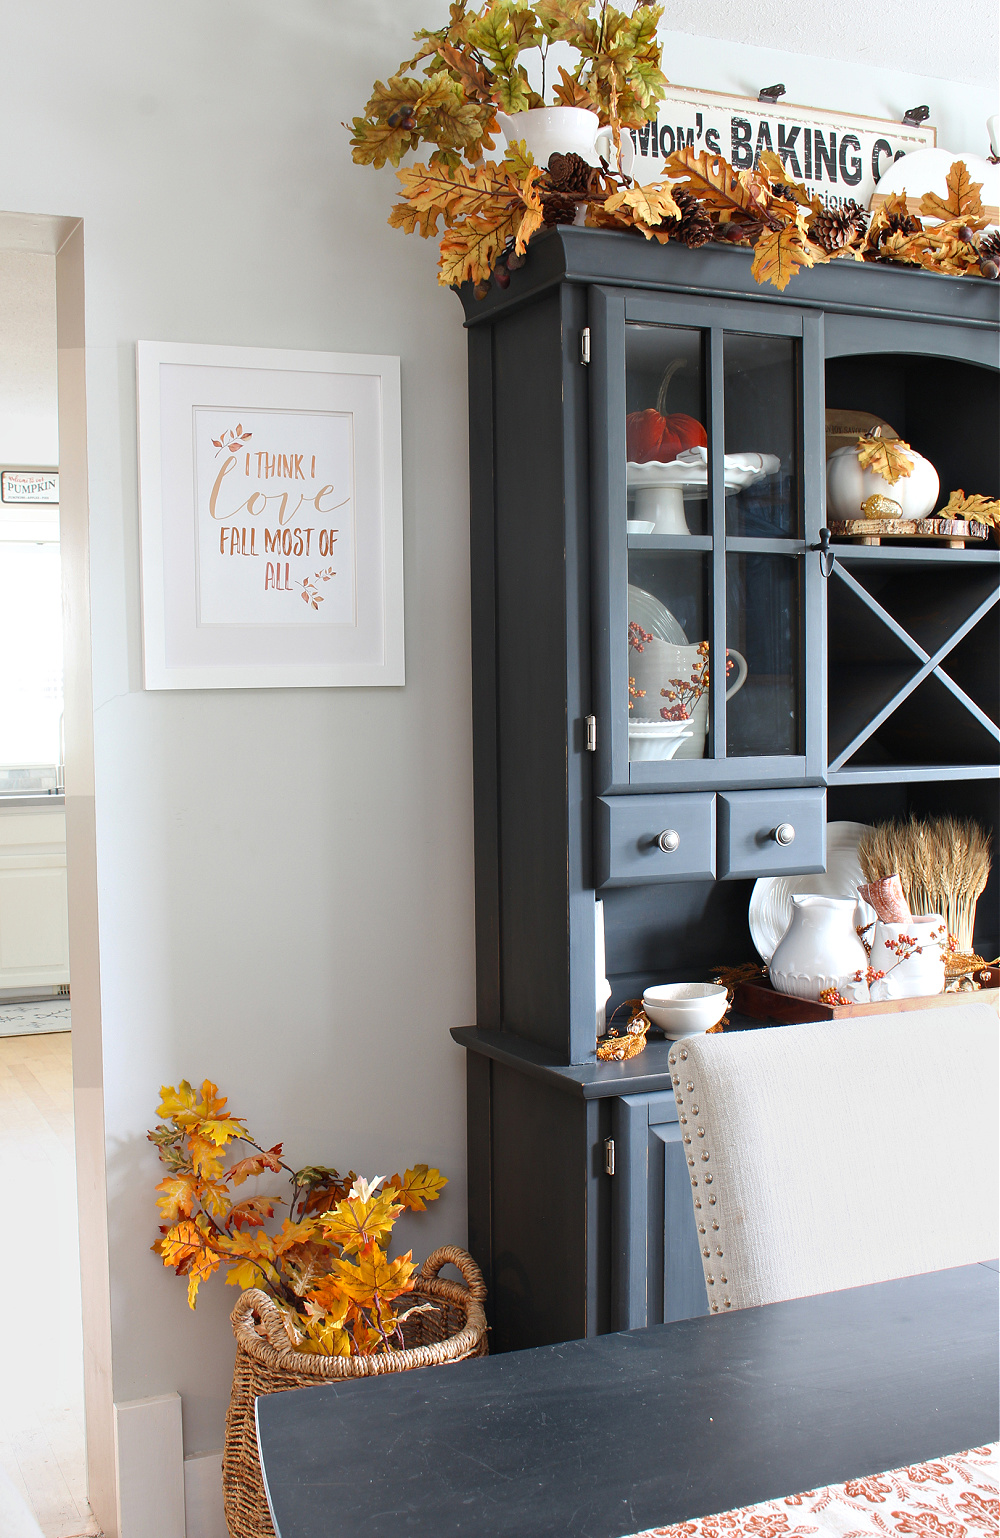 I Think I Love Fall Most of All free printable hanging in a white frame in a dining room.